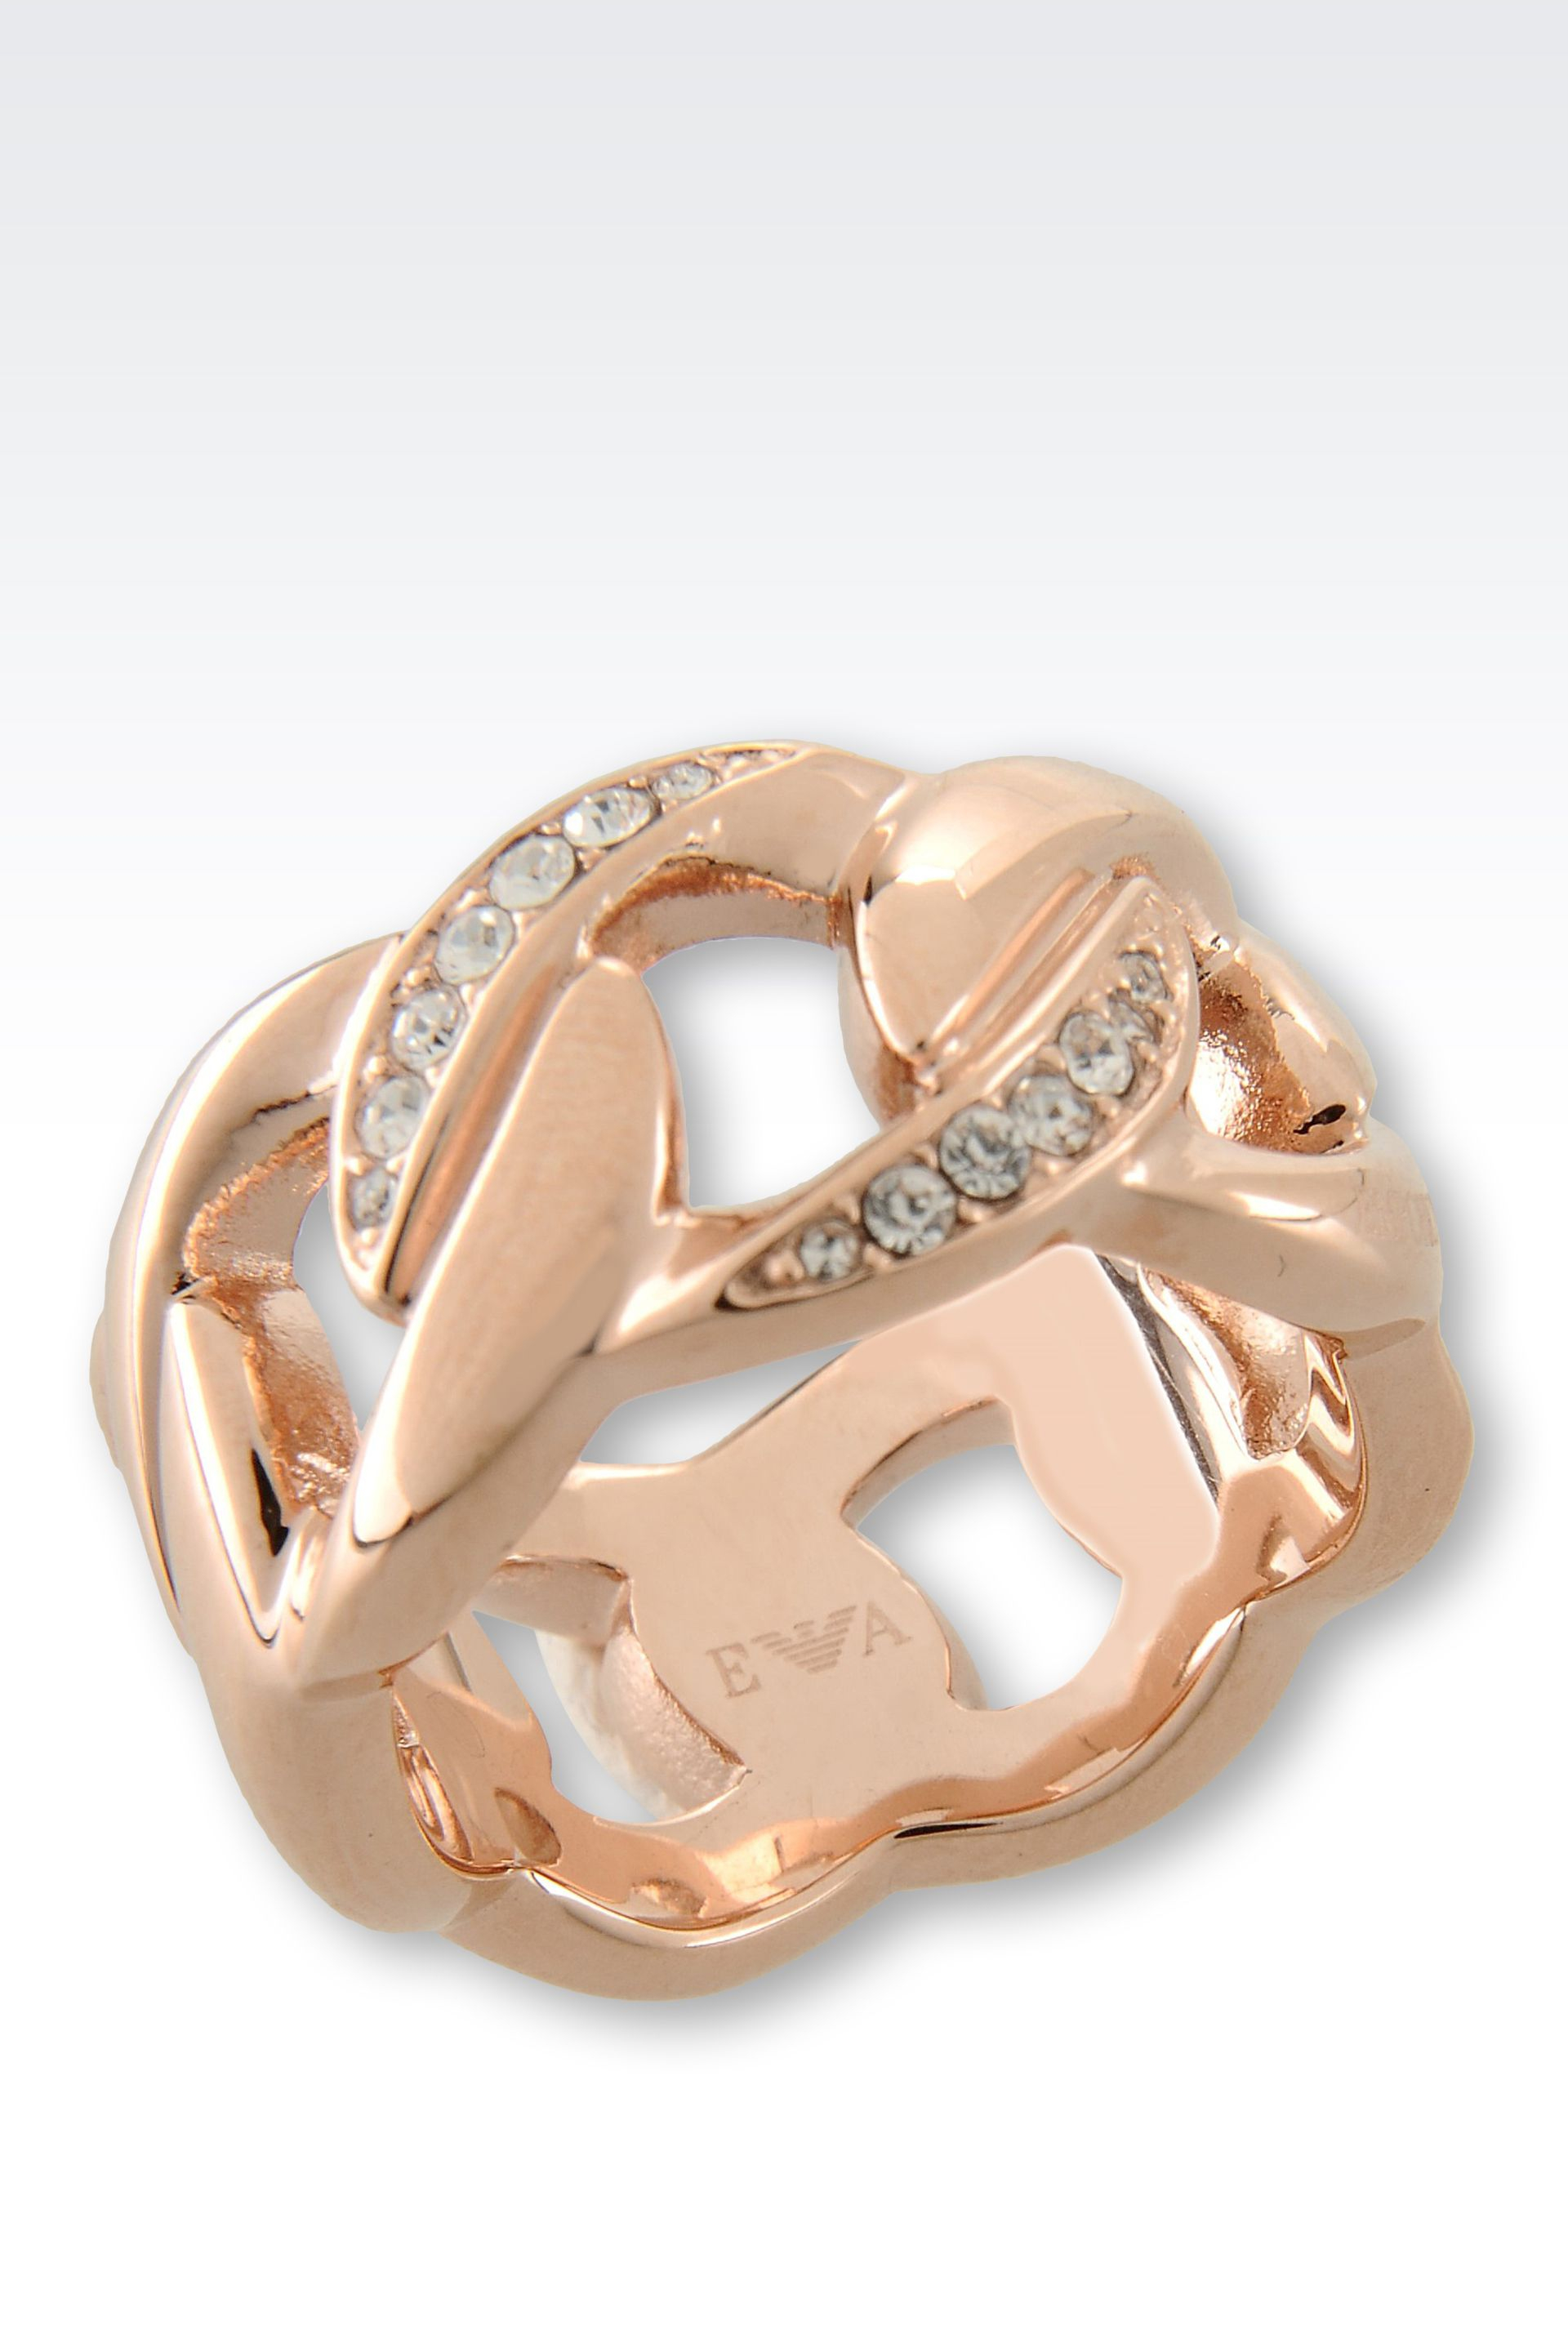 emporio armani ring in gold plated steel and crystals